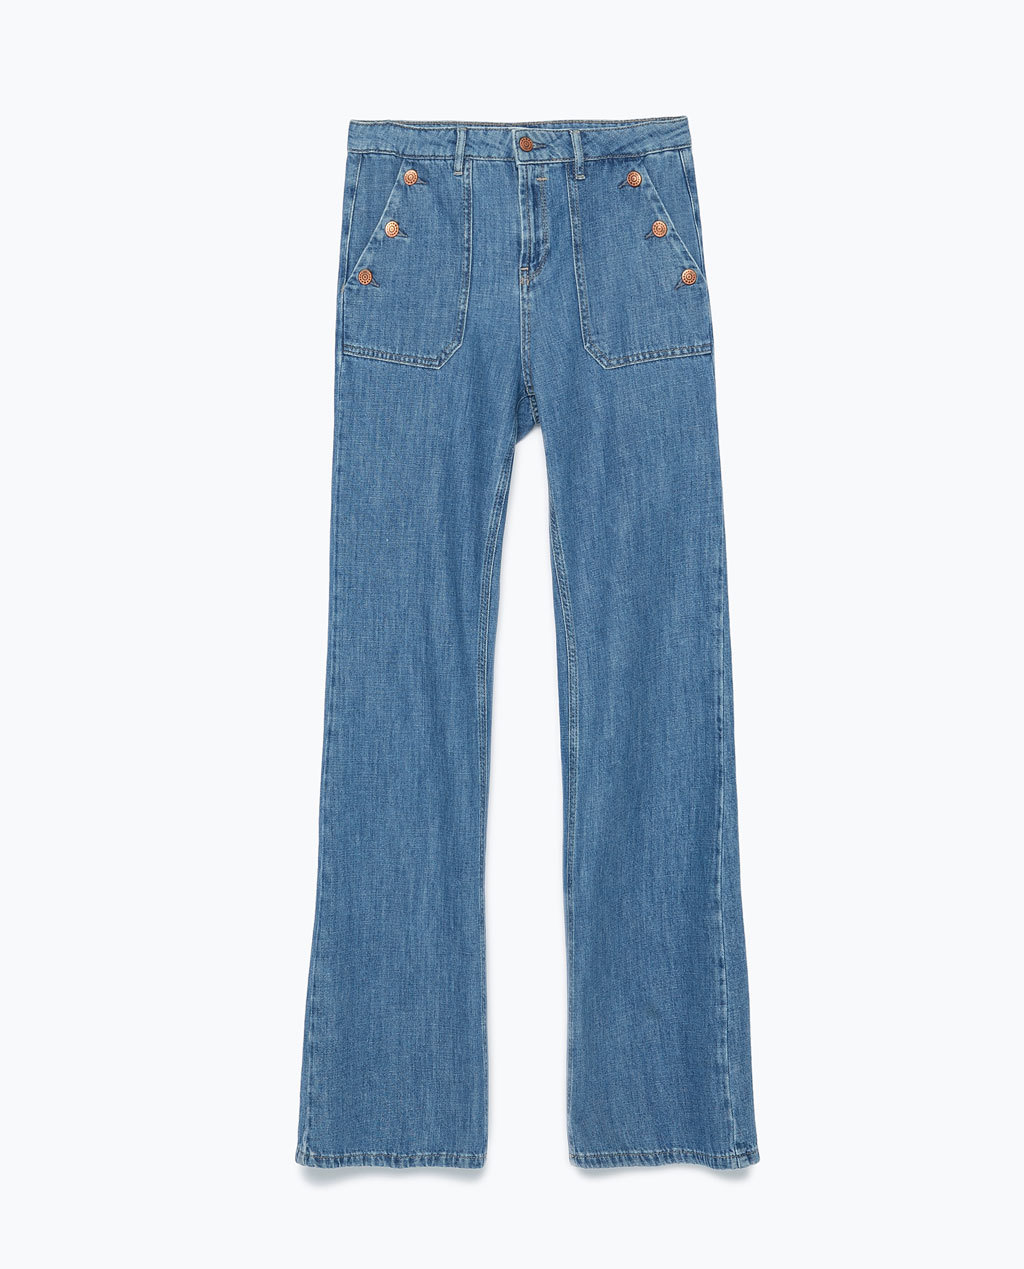 Flared Jeans - style: flares; length: standard; pattern: plain; waist: high rise; predominant colour: denim; occasions: casual; fibres: cotton - stretch; texture group: denim; pattern type: fabric; trends: seventies retro; season: s/s 2015; wardrobe: basic